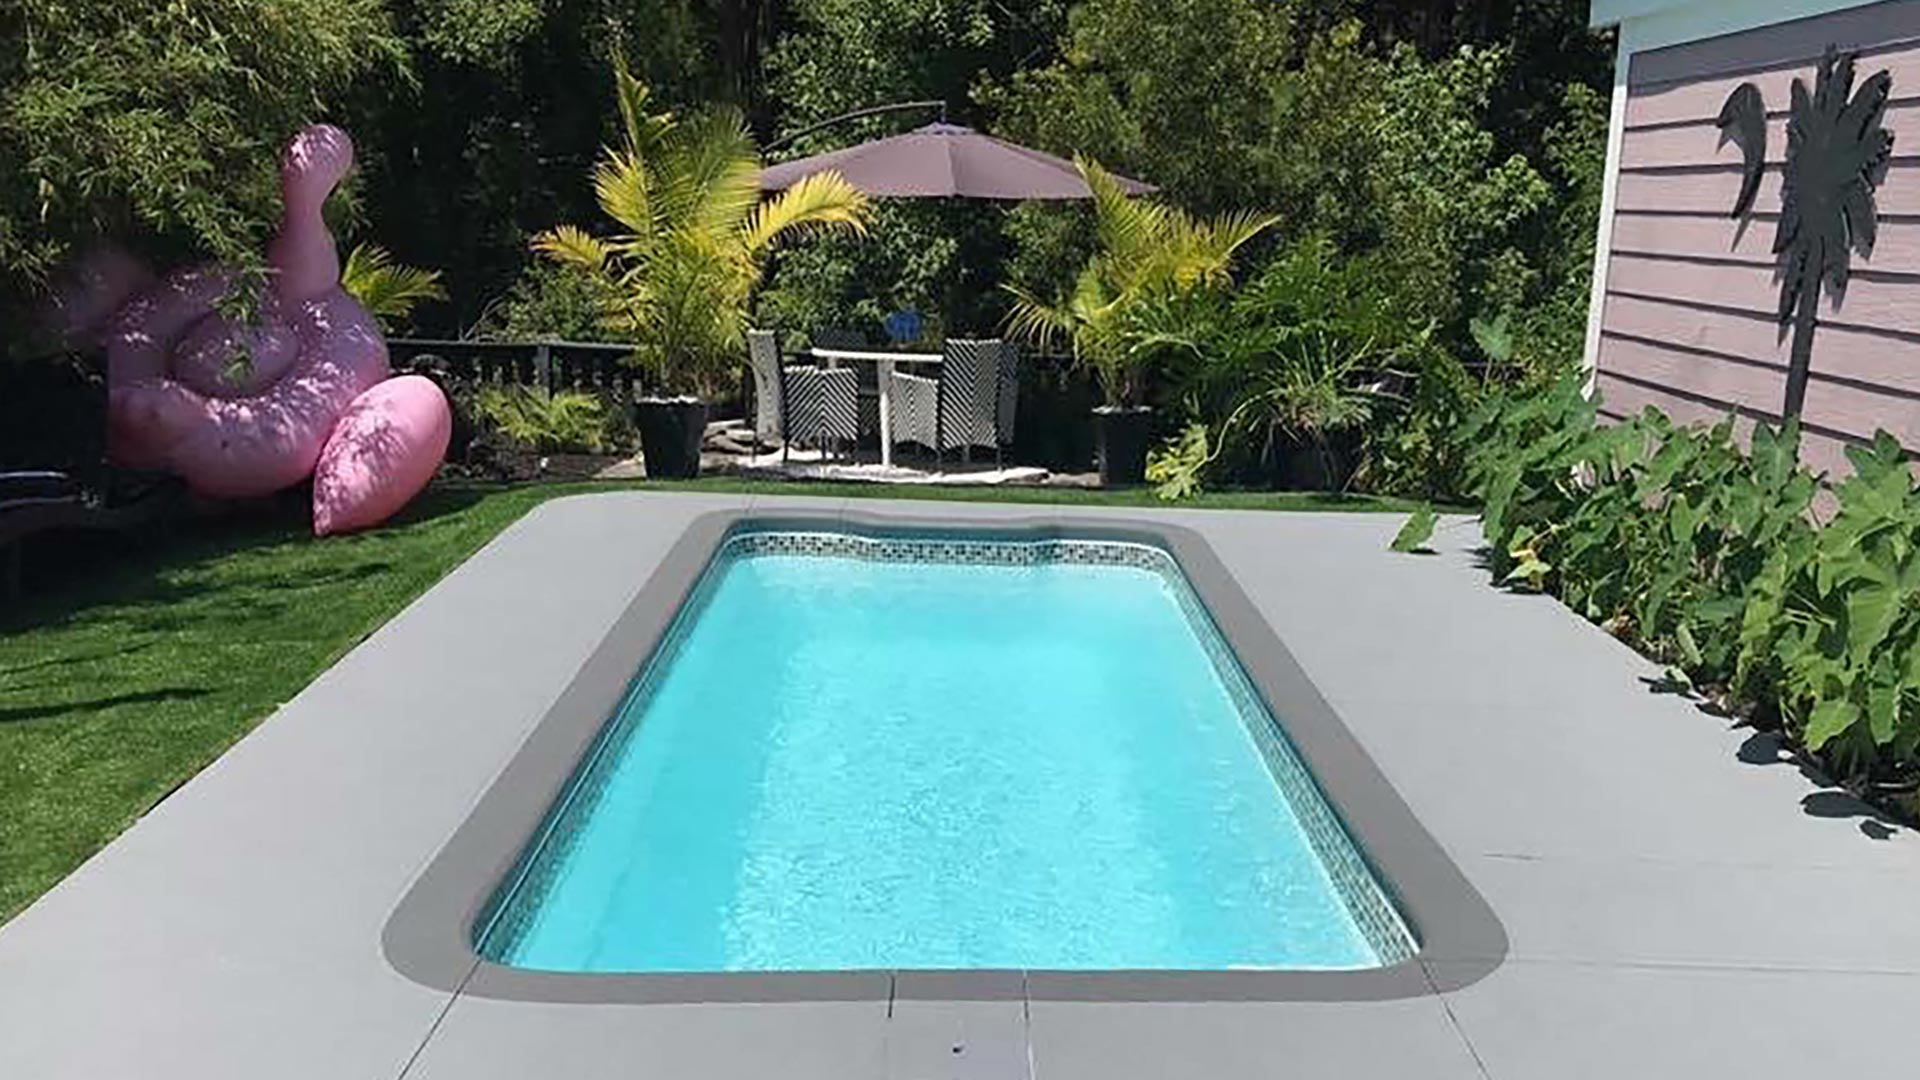 Alaglas Pools' Citation III model, a small, rectangular patio pool in white